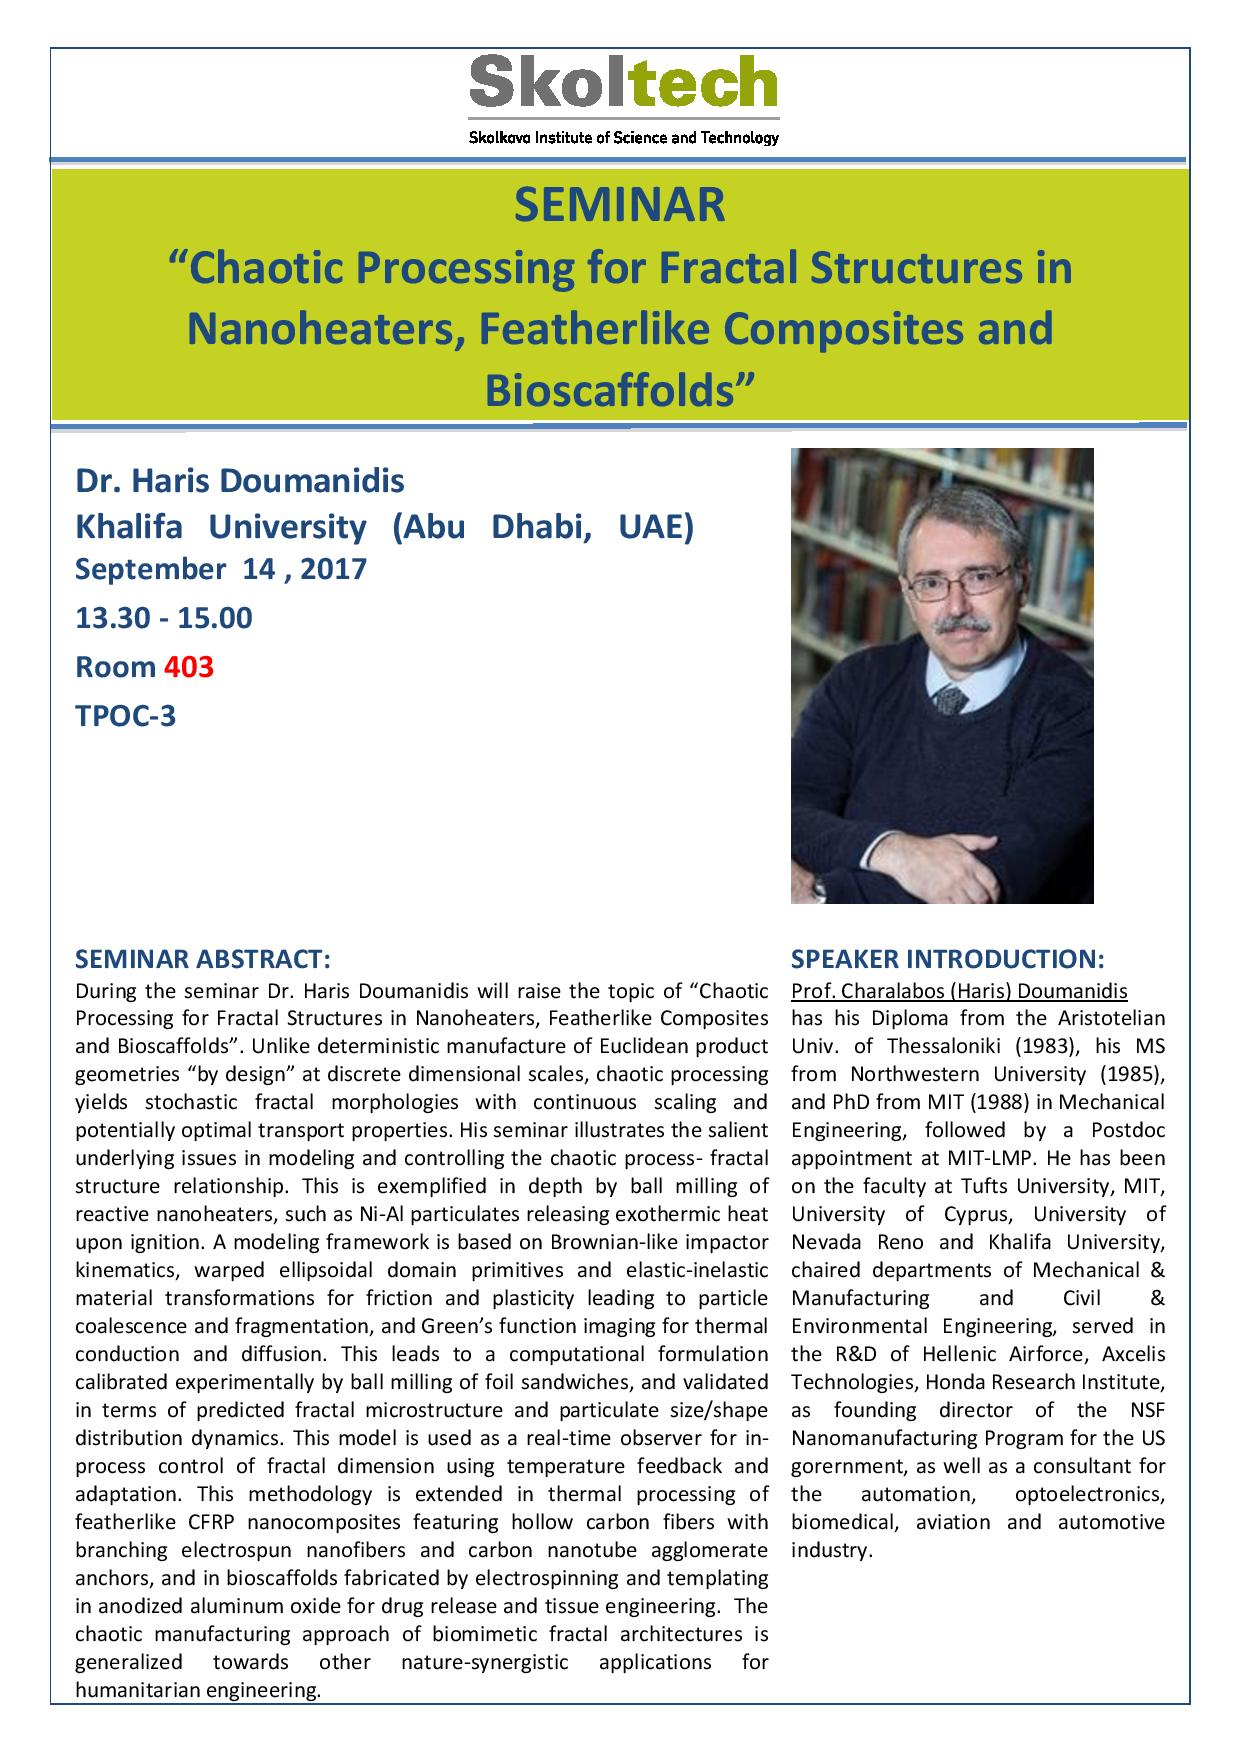 dr-haris-doumanidis-sept-14-15-seminar-announcement-page-001